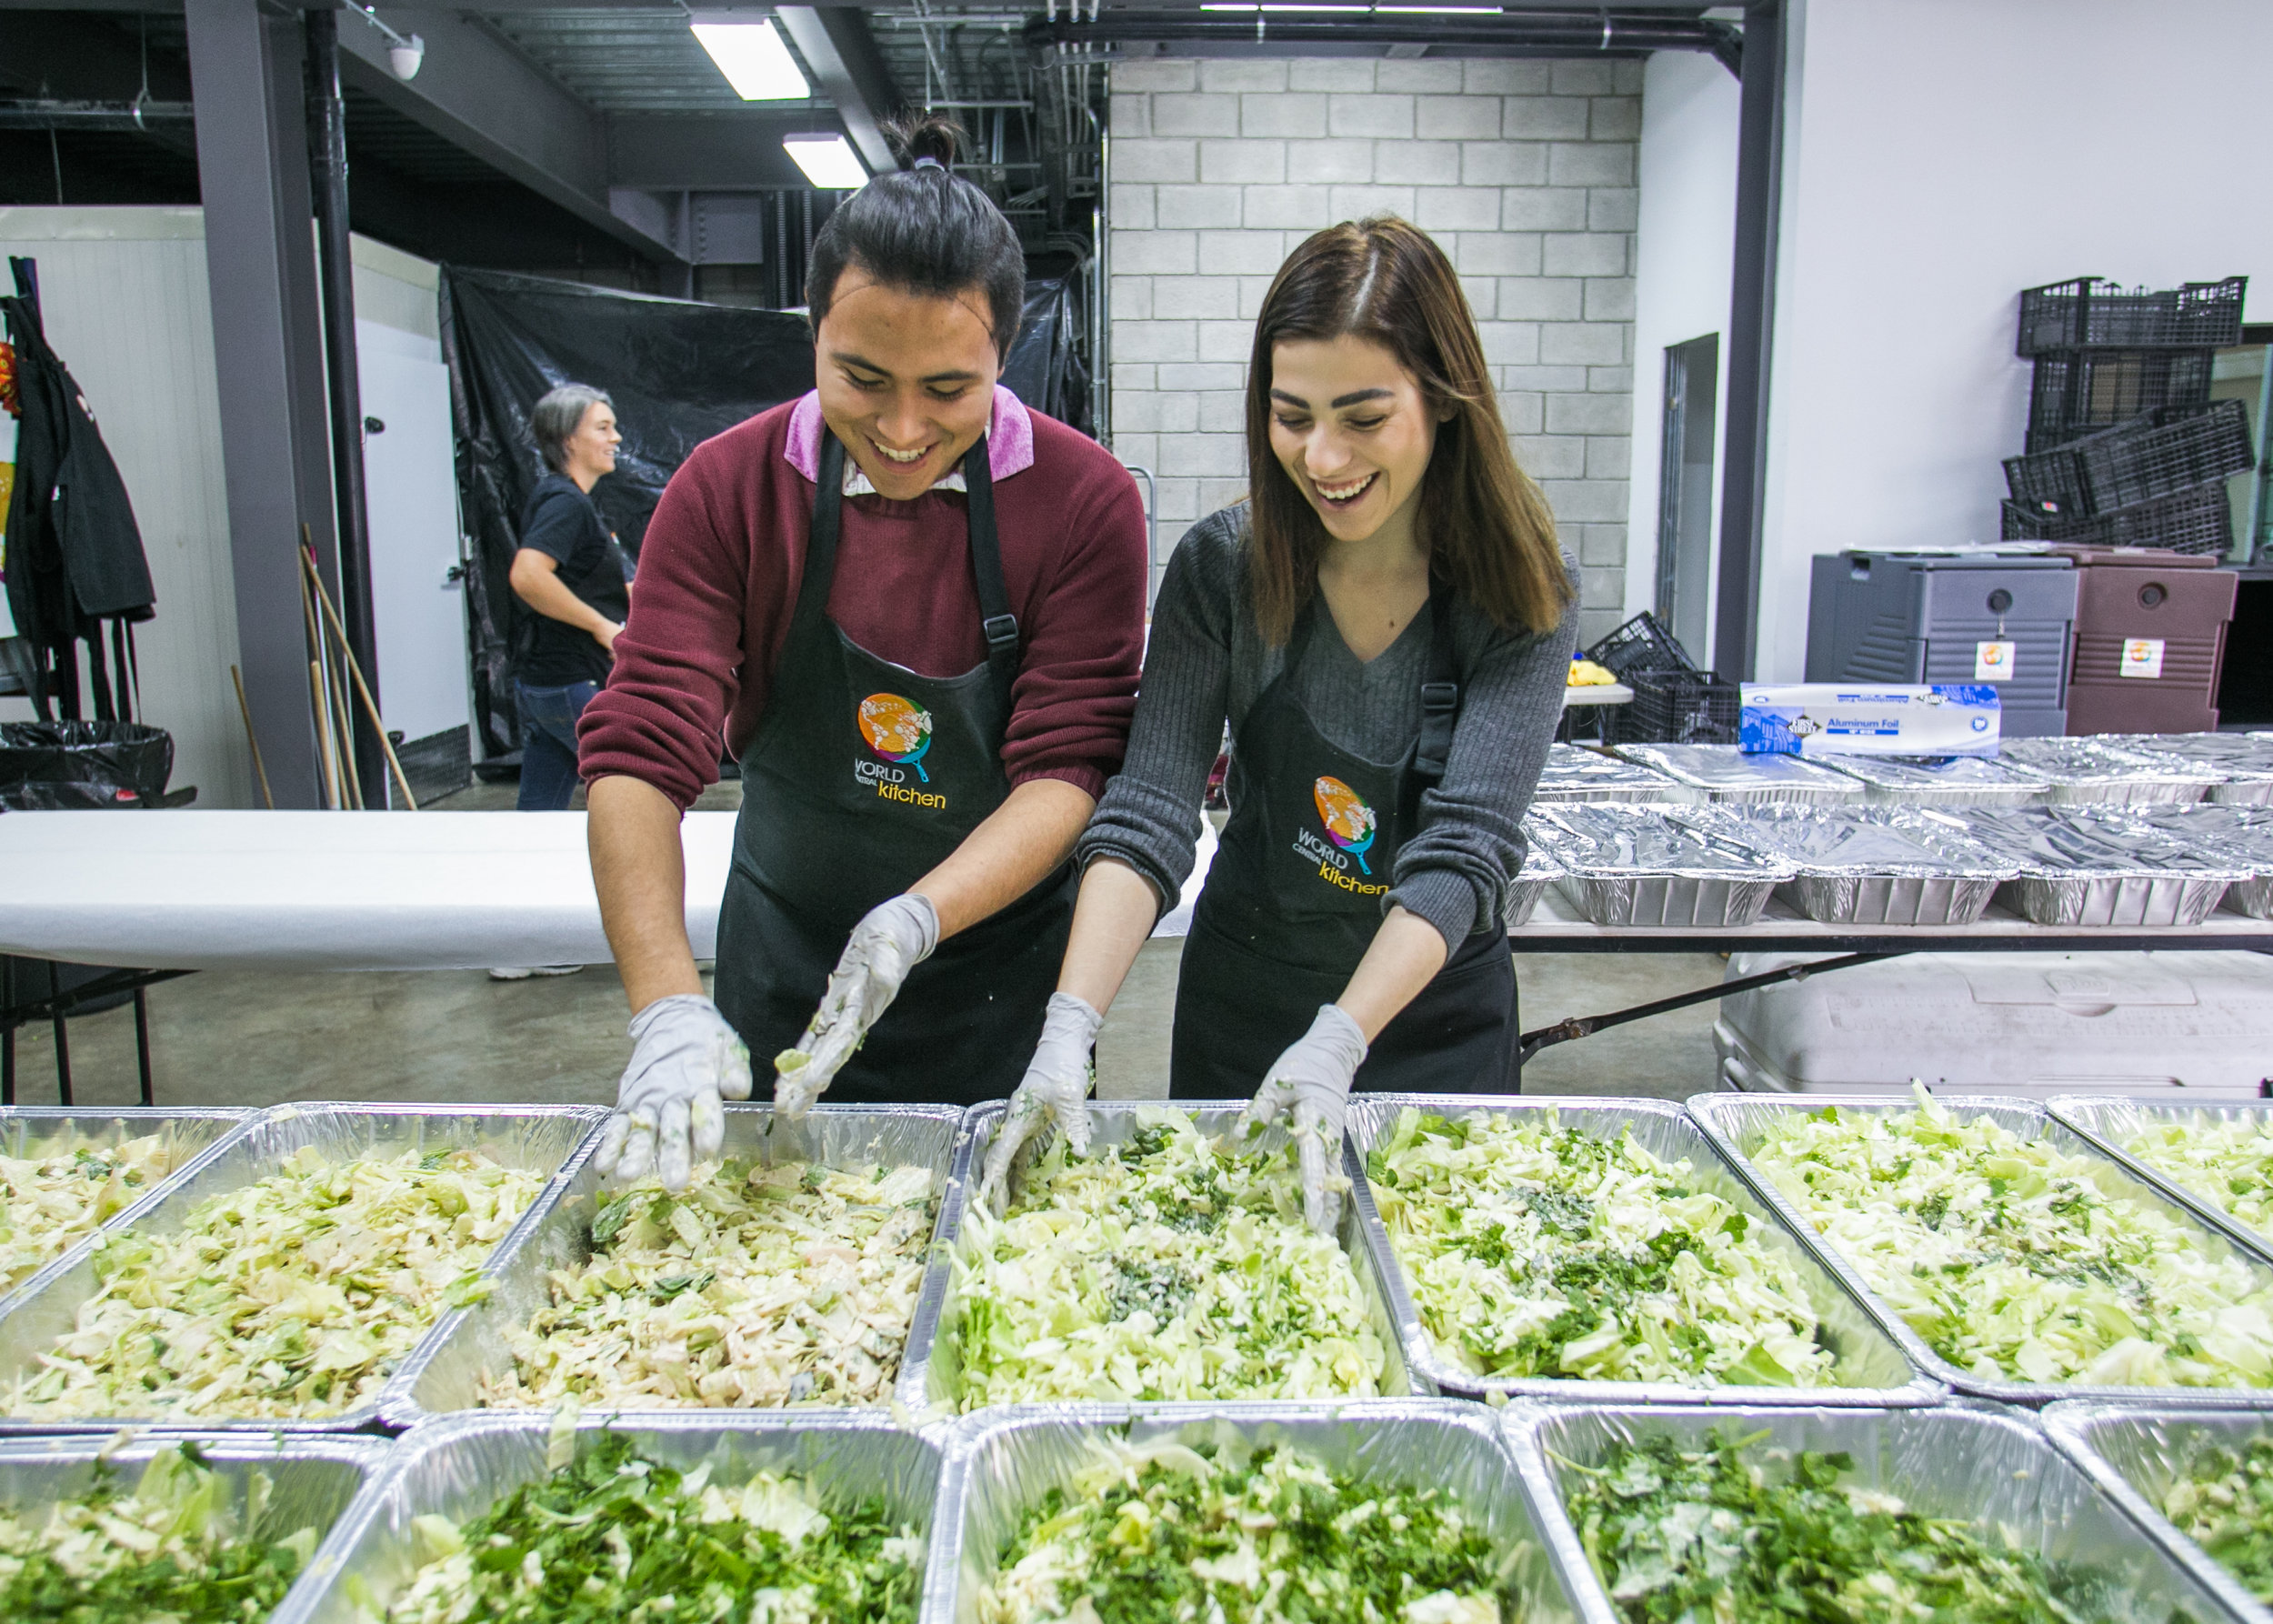 Oscar Montana, a volunteer from a local Tijuana university, prepares dinner at the World Central Kitchen Headquarters.